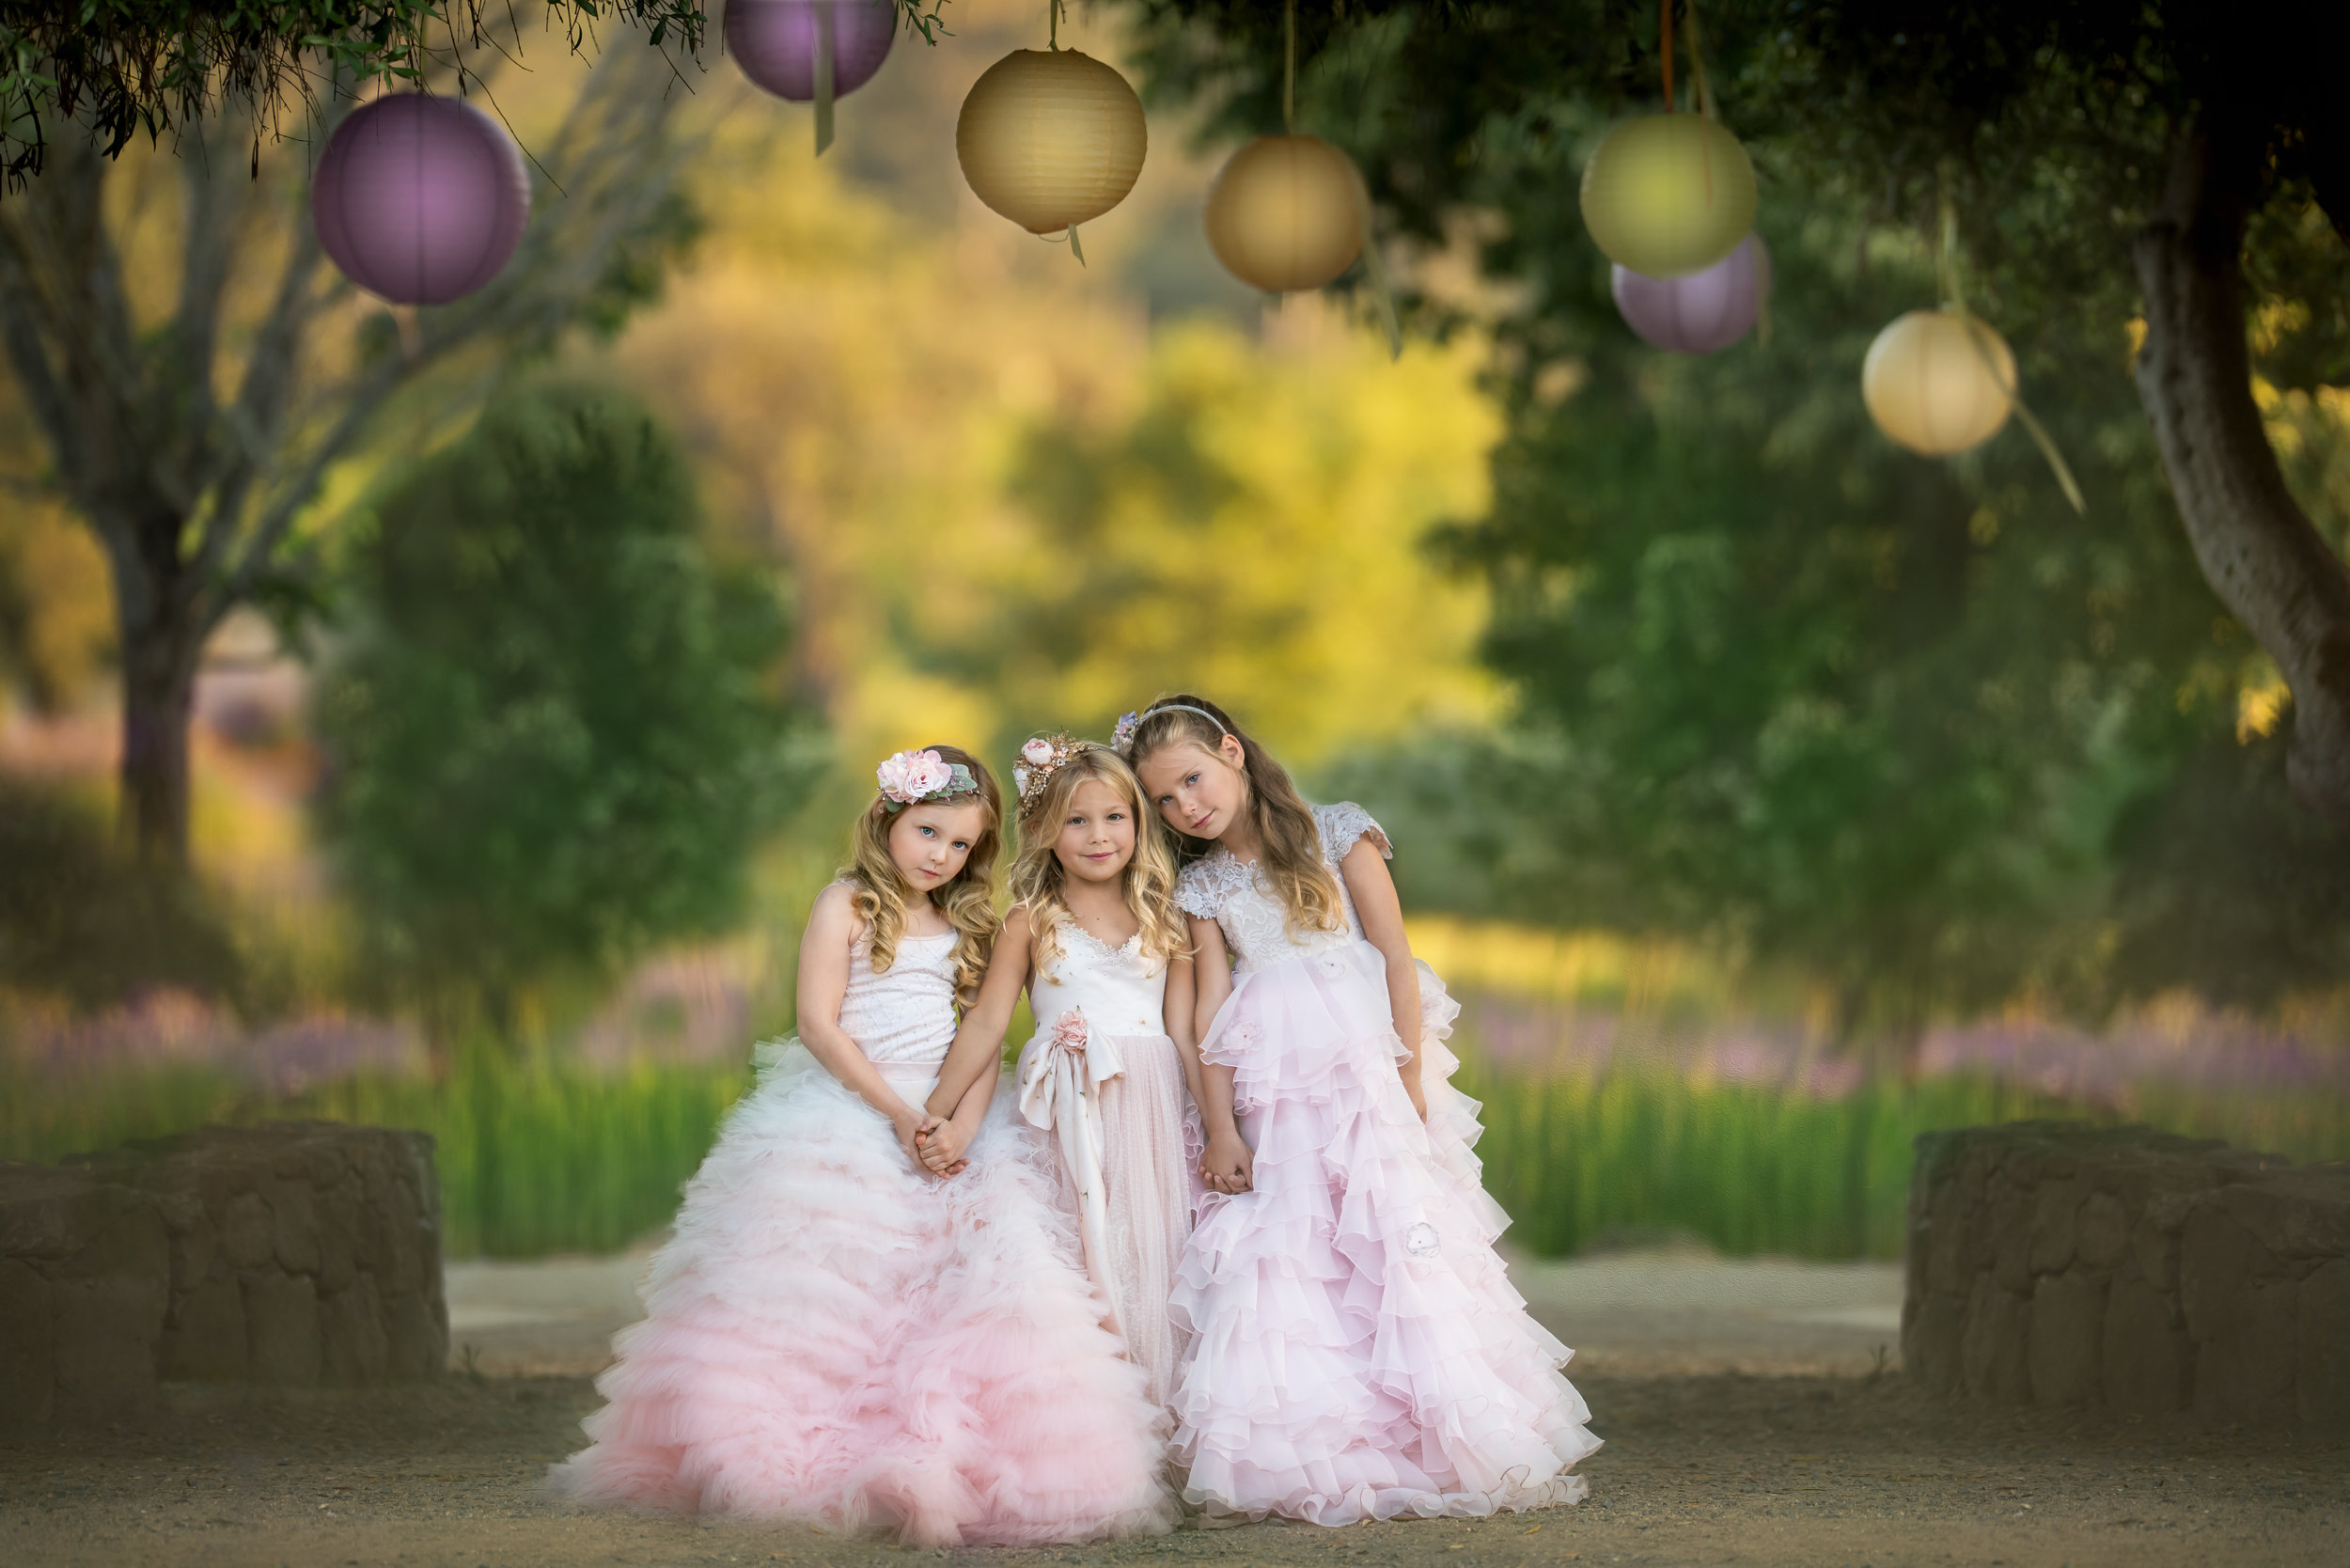 girls portrait in couture dresses